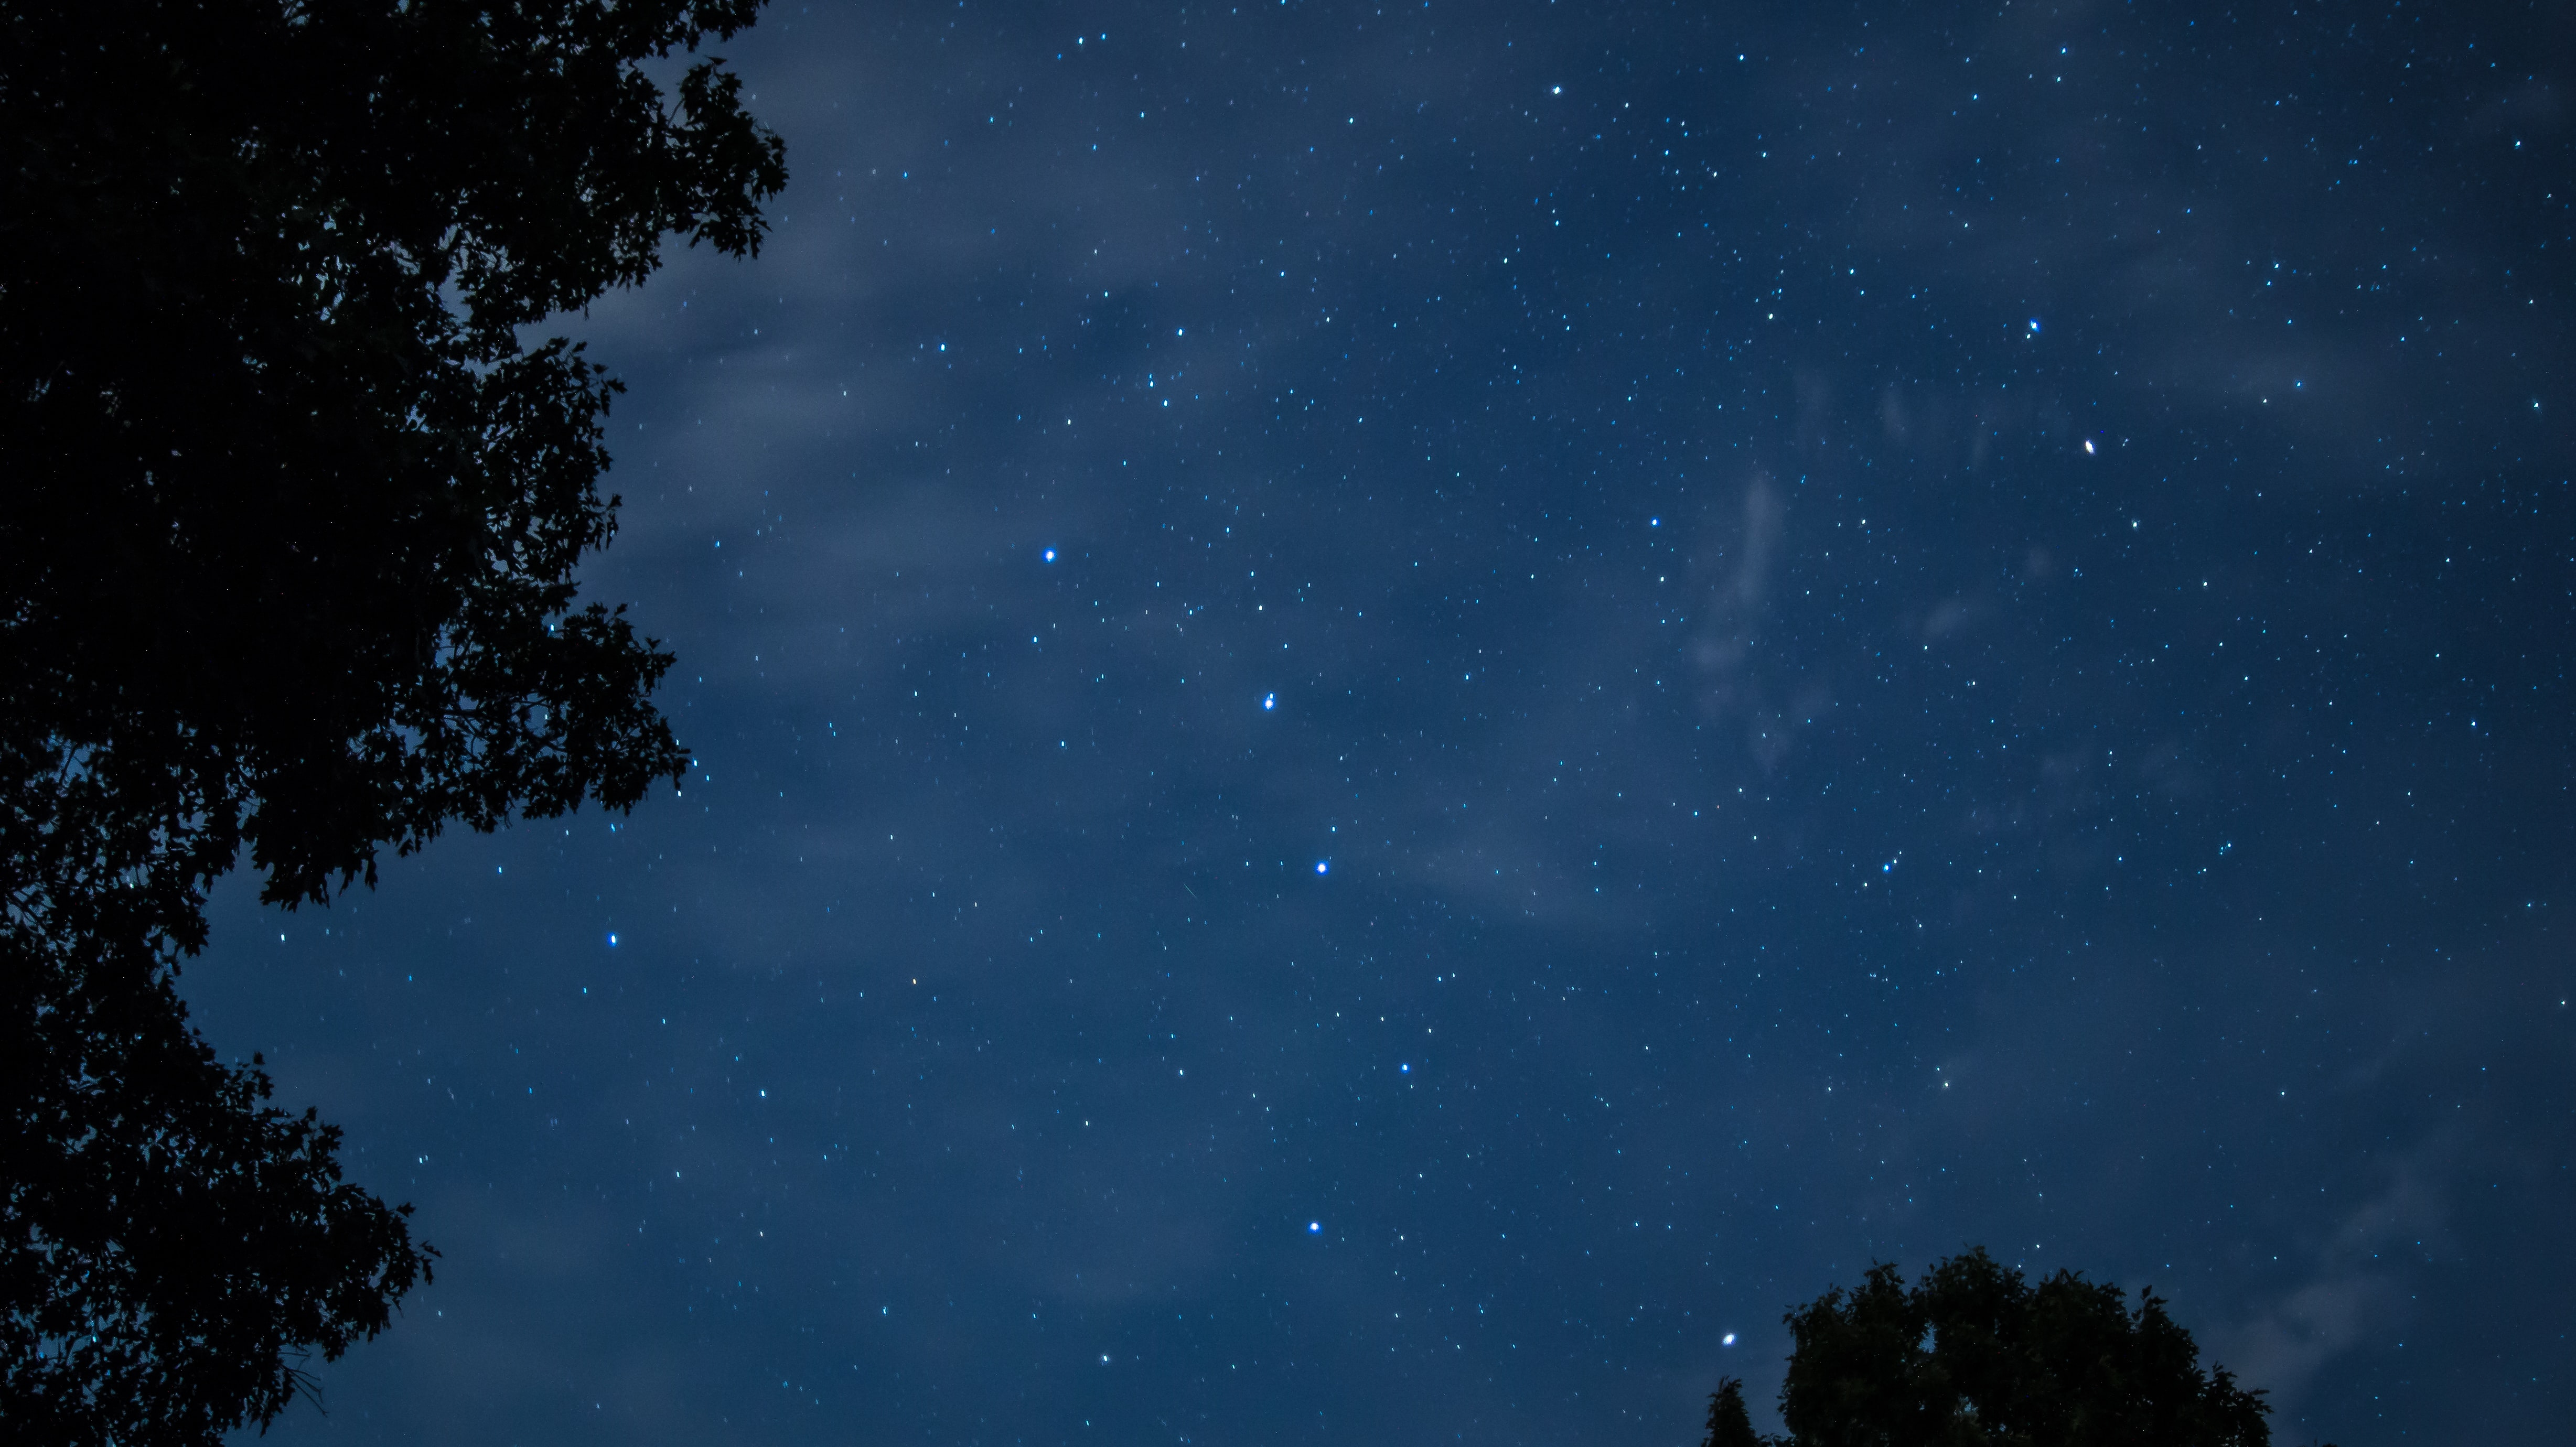 low-angle photo of starry night